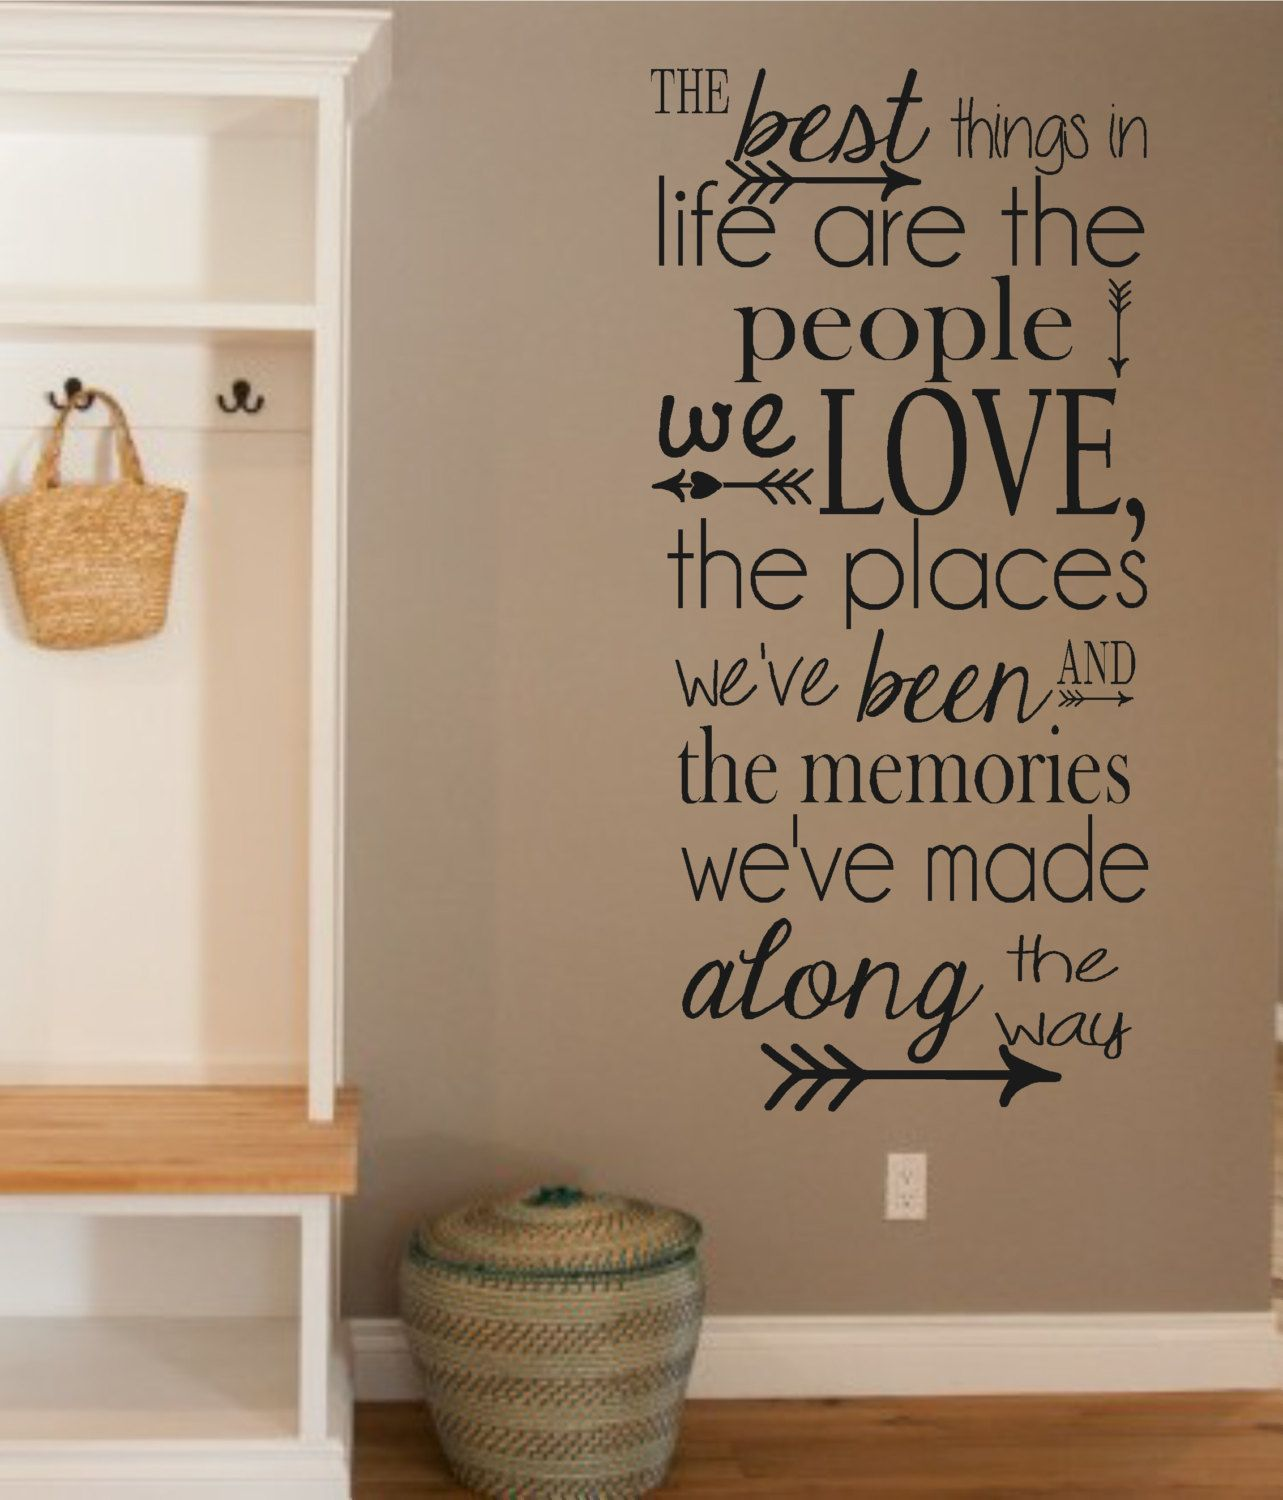 Laundry Room Wall Decor Stickers Amazing Vinyl Wall Decalthe Best Things In Life People Love Memories Design Inspiration